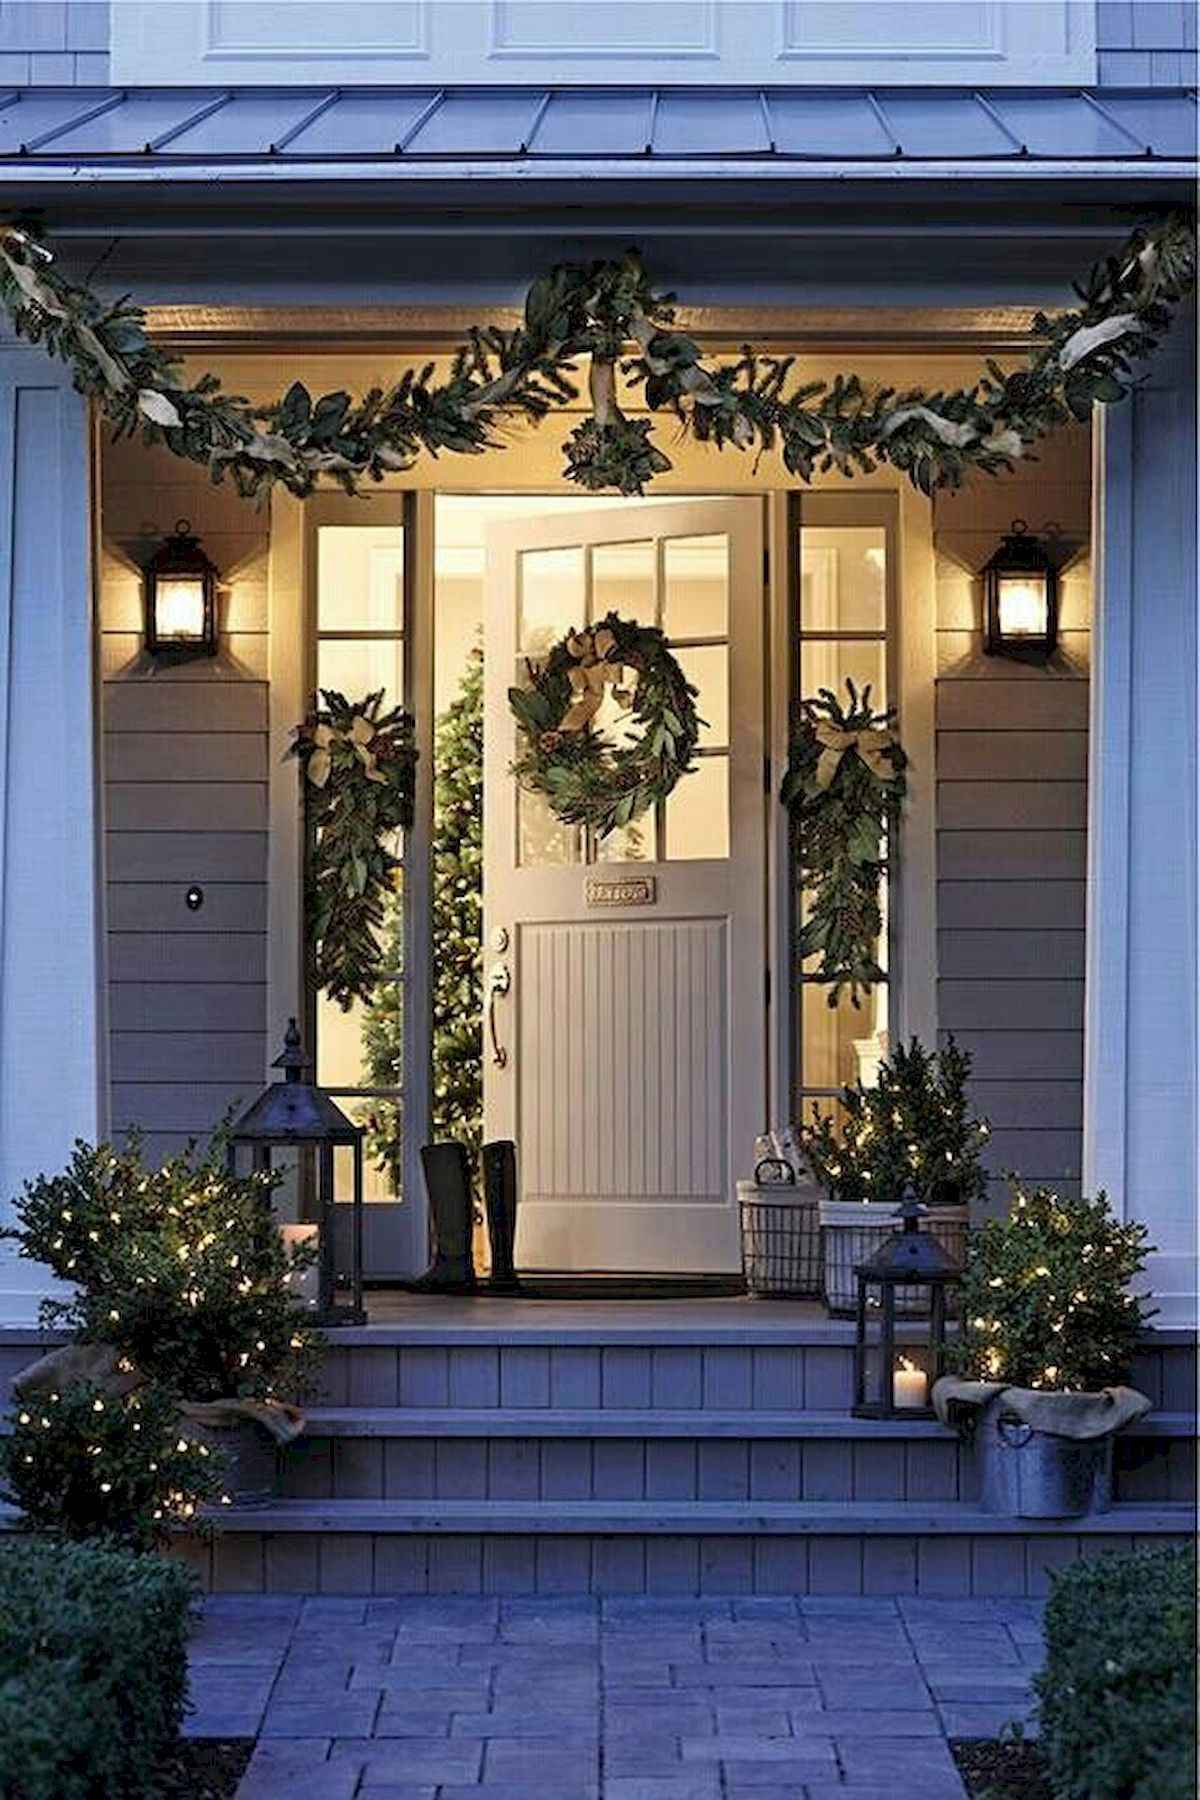 50 stunning front porch christmas lights decorations ideas (43)